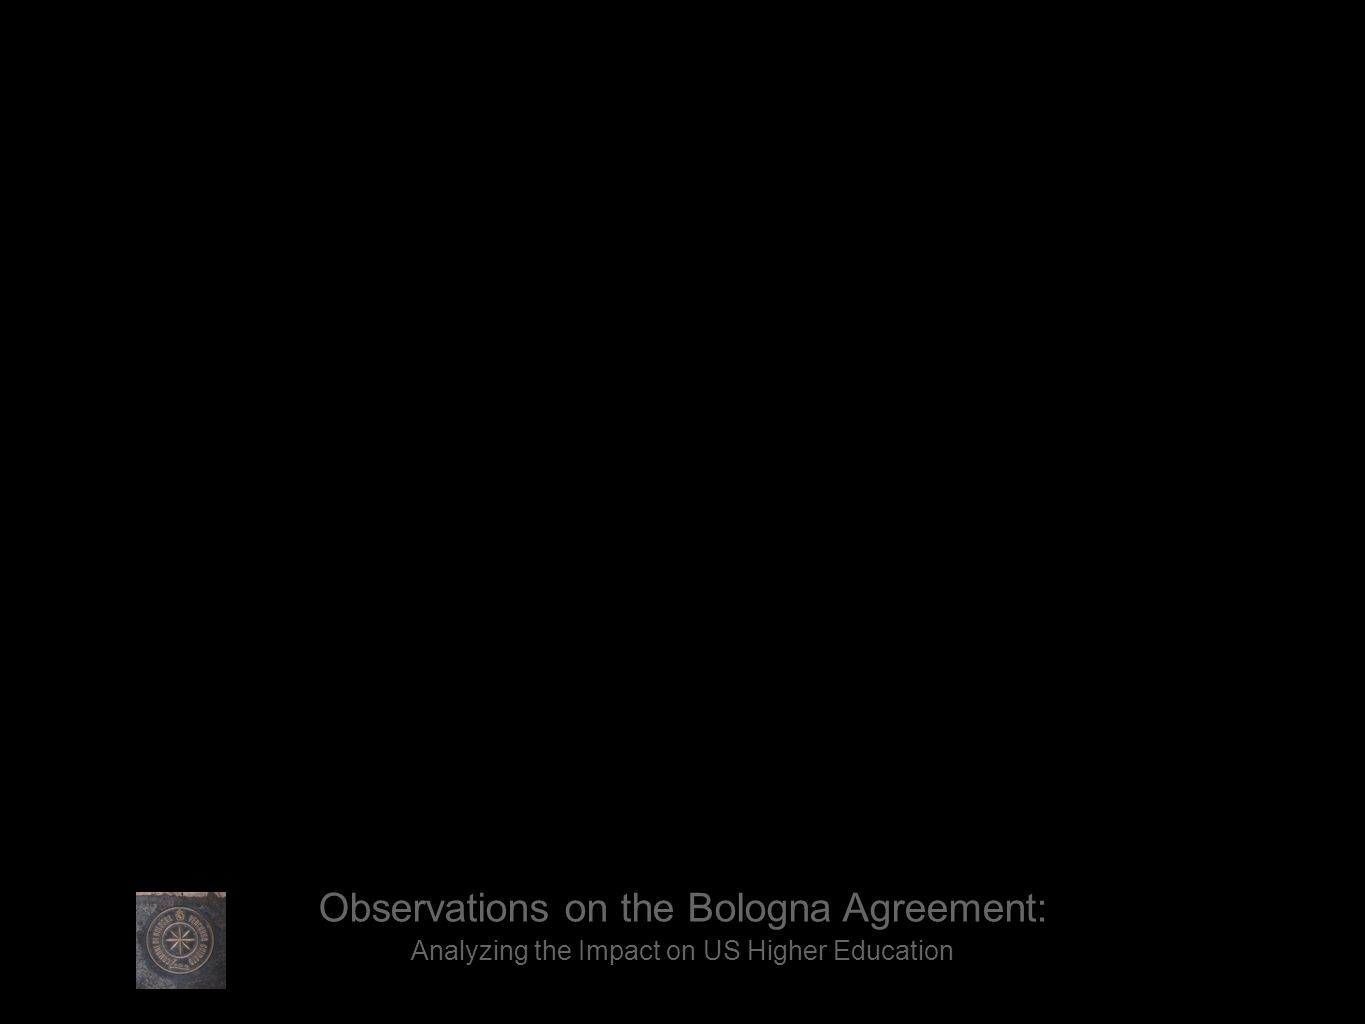 Observations on the Bologna Agreement: Analyzing the Impact on US Higher Education